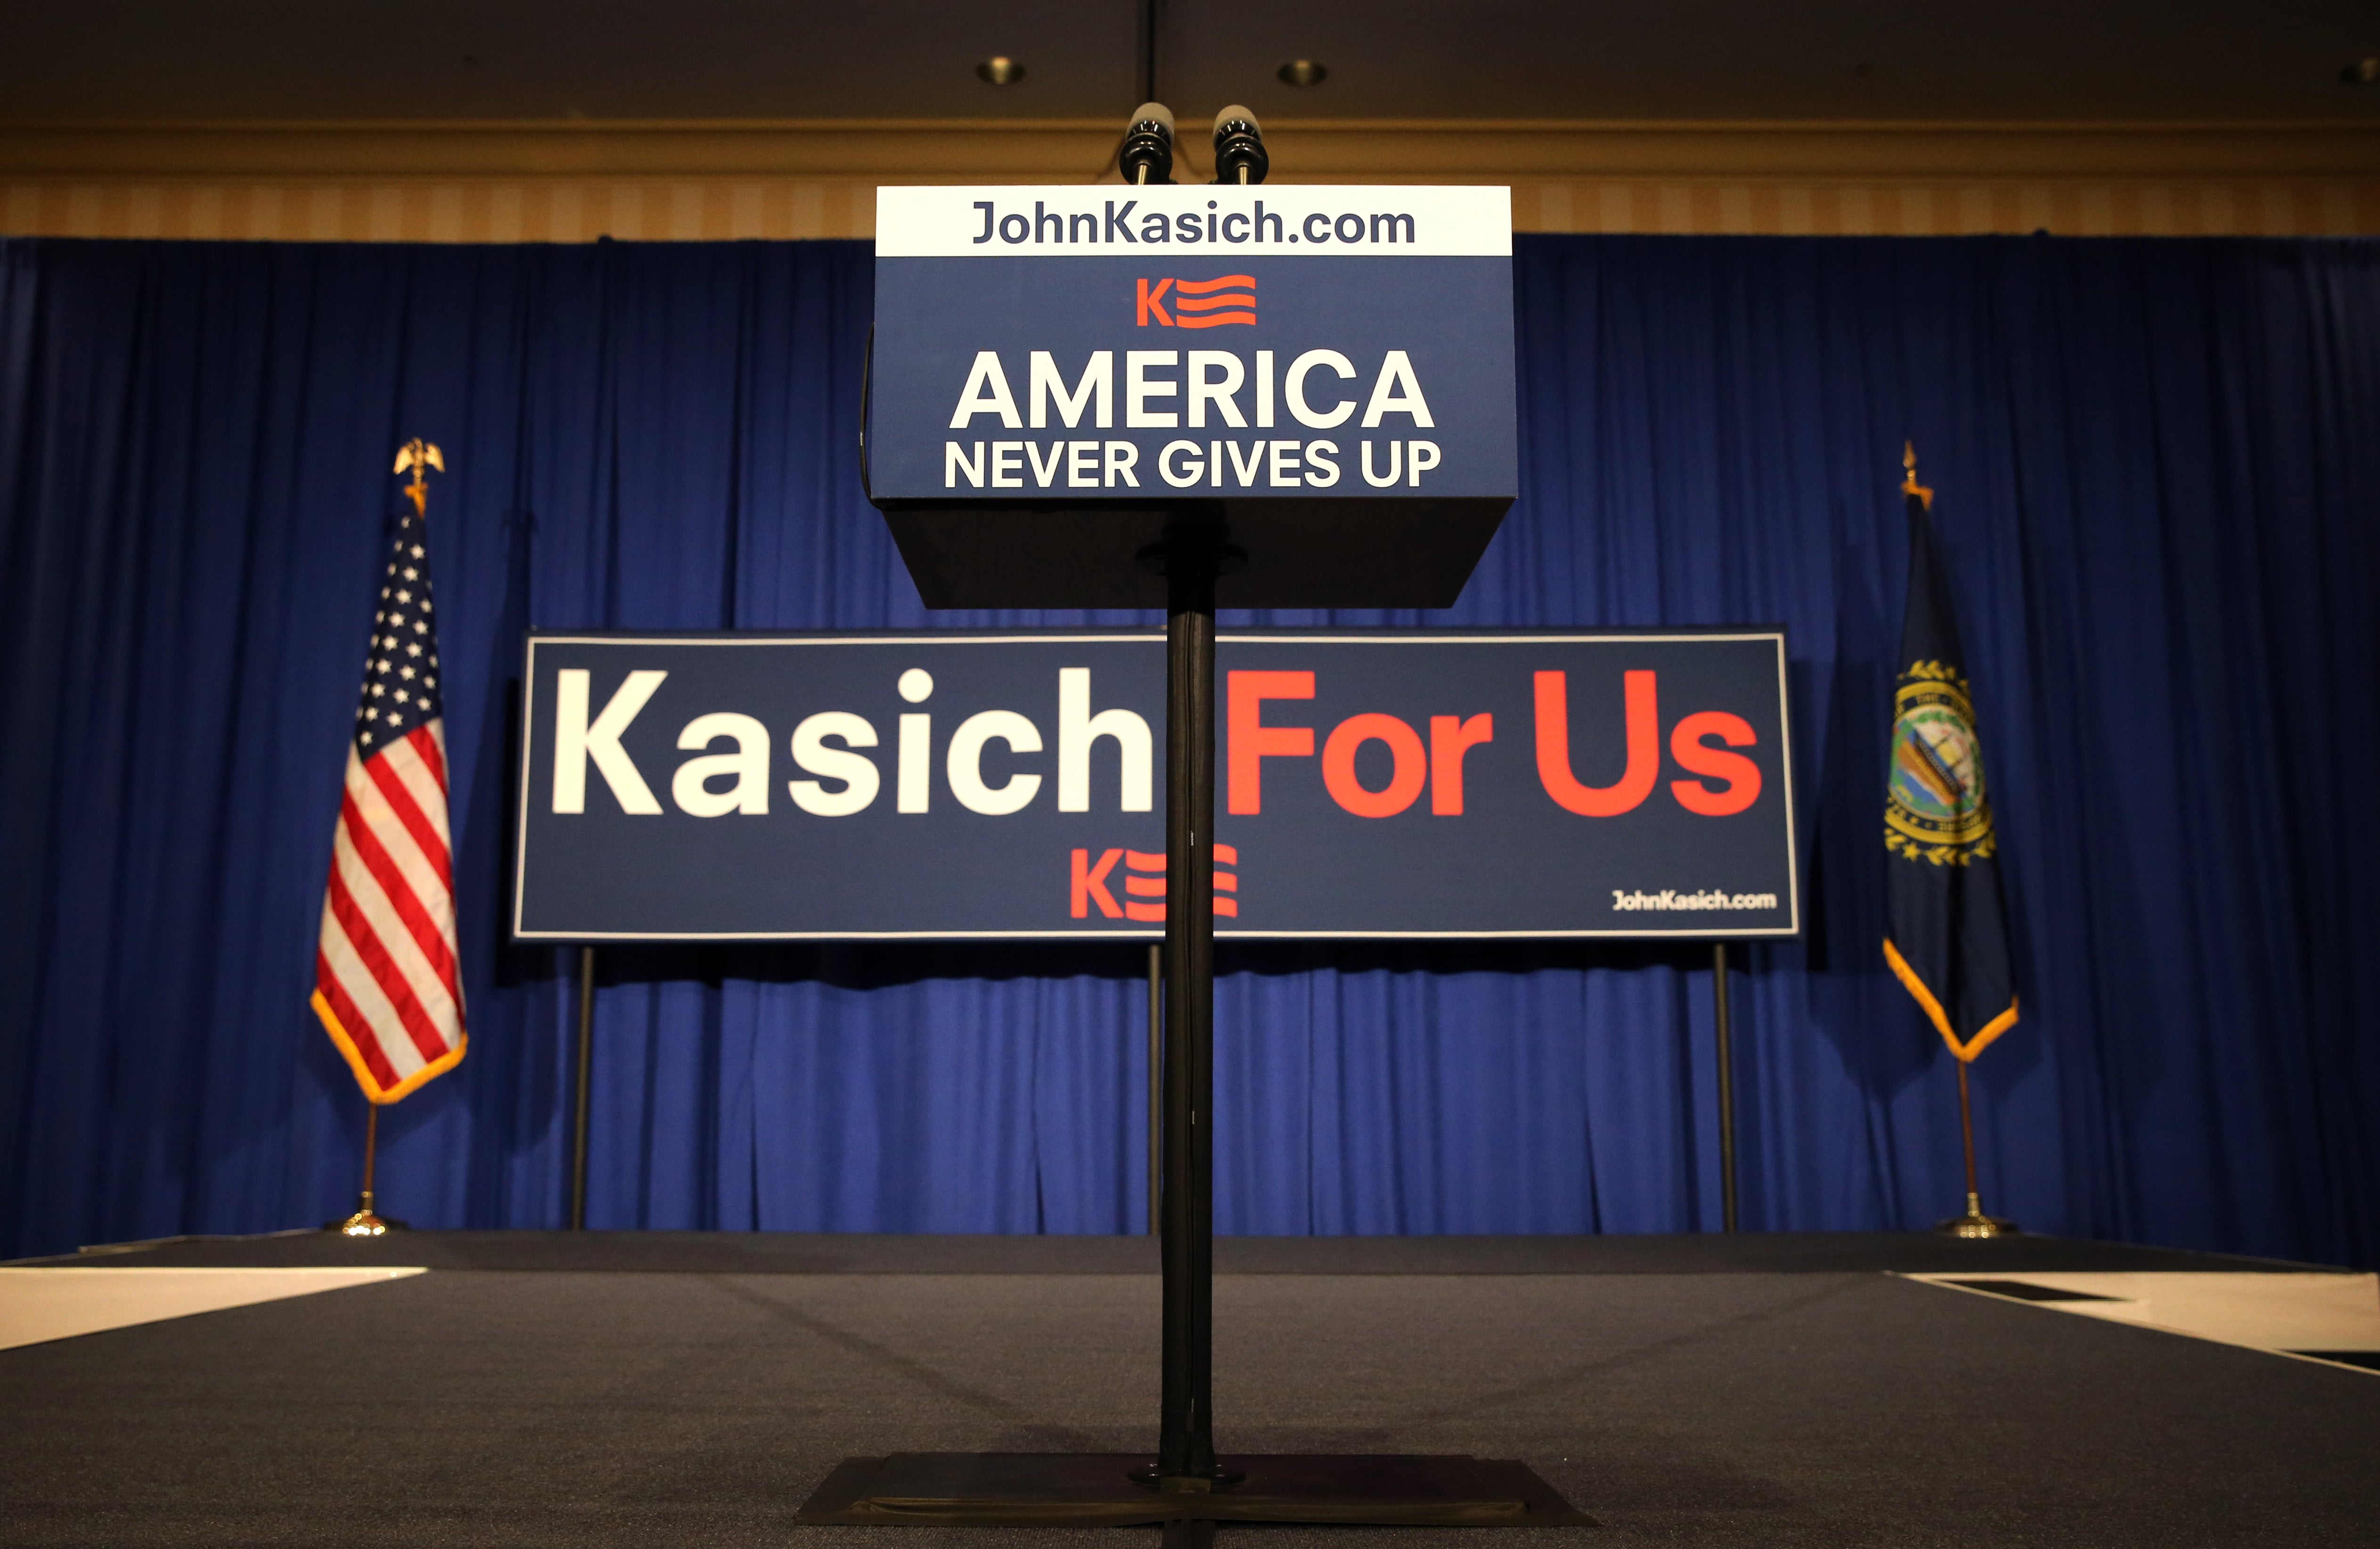 The scene is set for Kasich's New Hampshire primary election night party at the Grappone Conference Center in Concord, N.H.